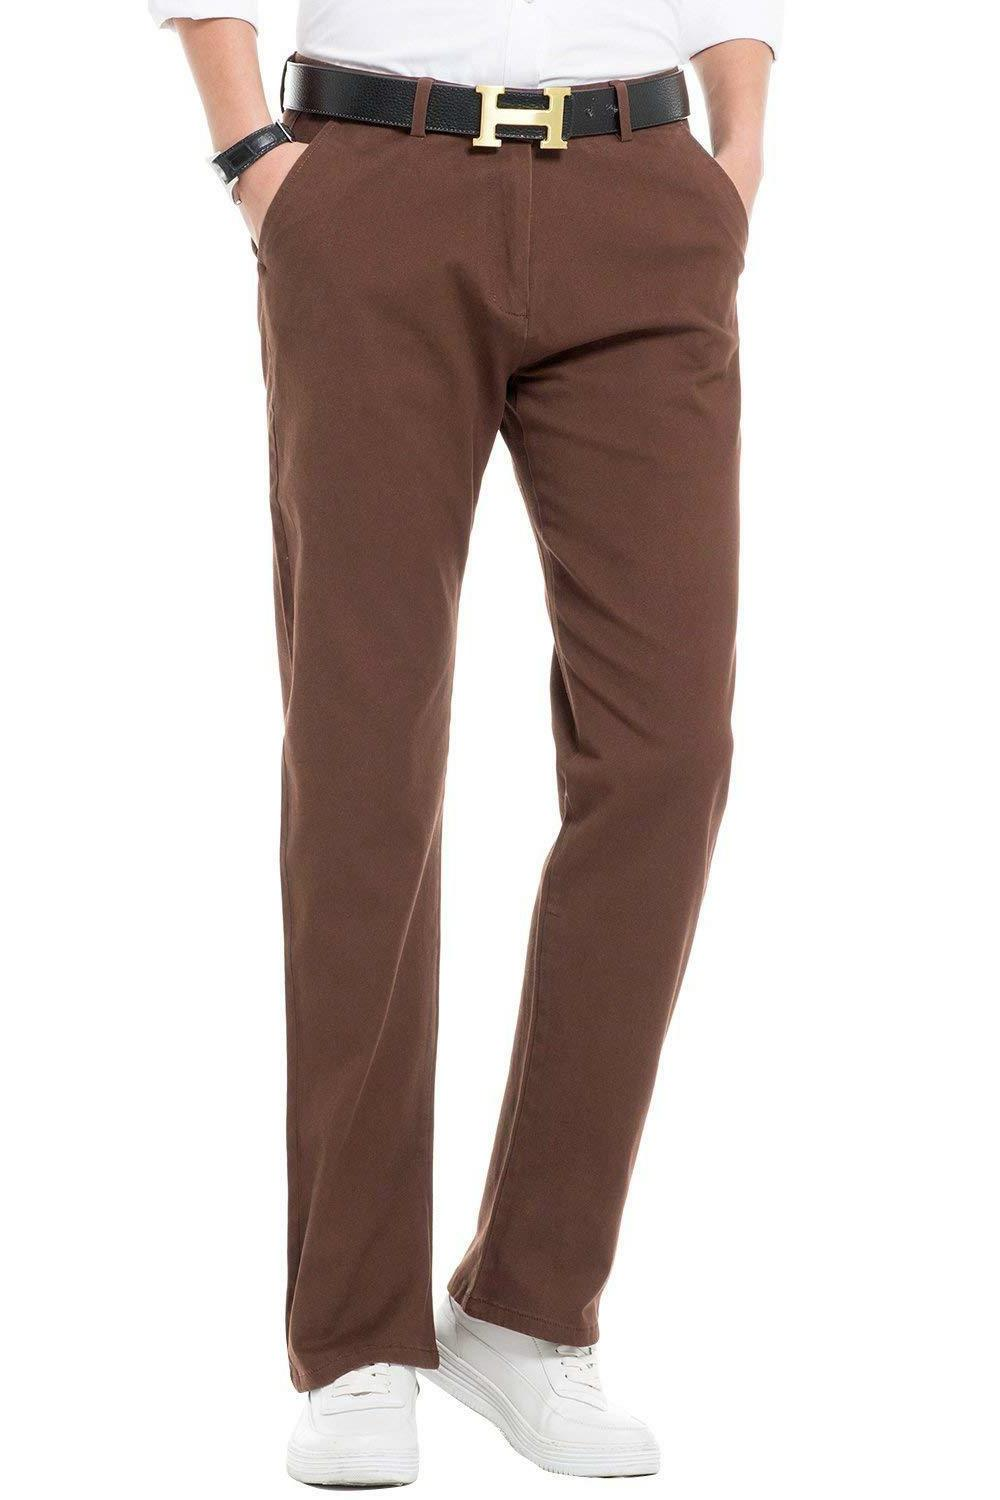 INFLATION Men's Stretchy Straight Fit Casual Pants, Blend Co